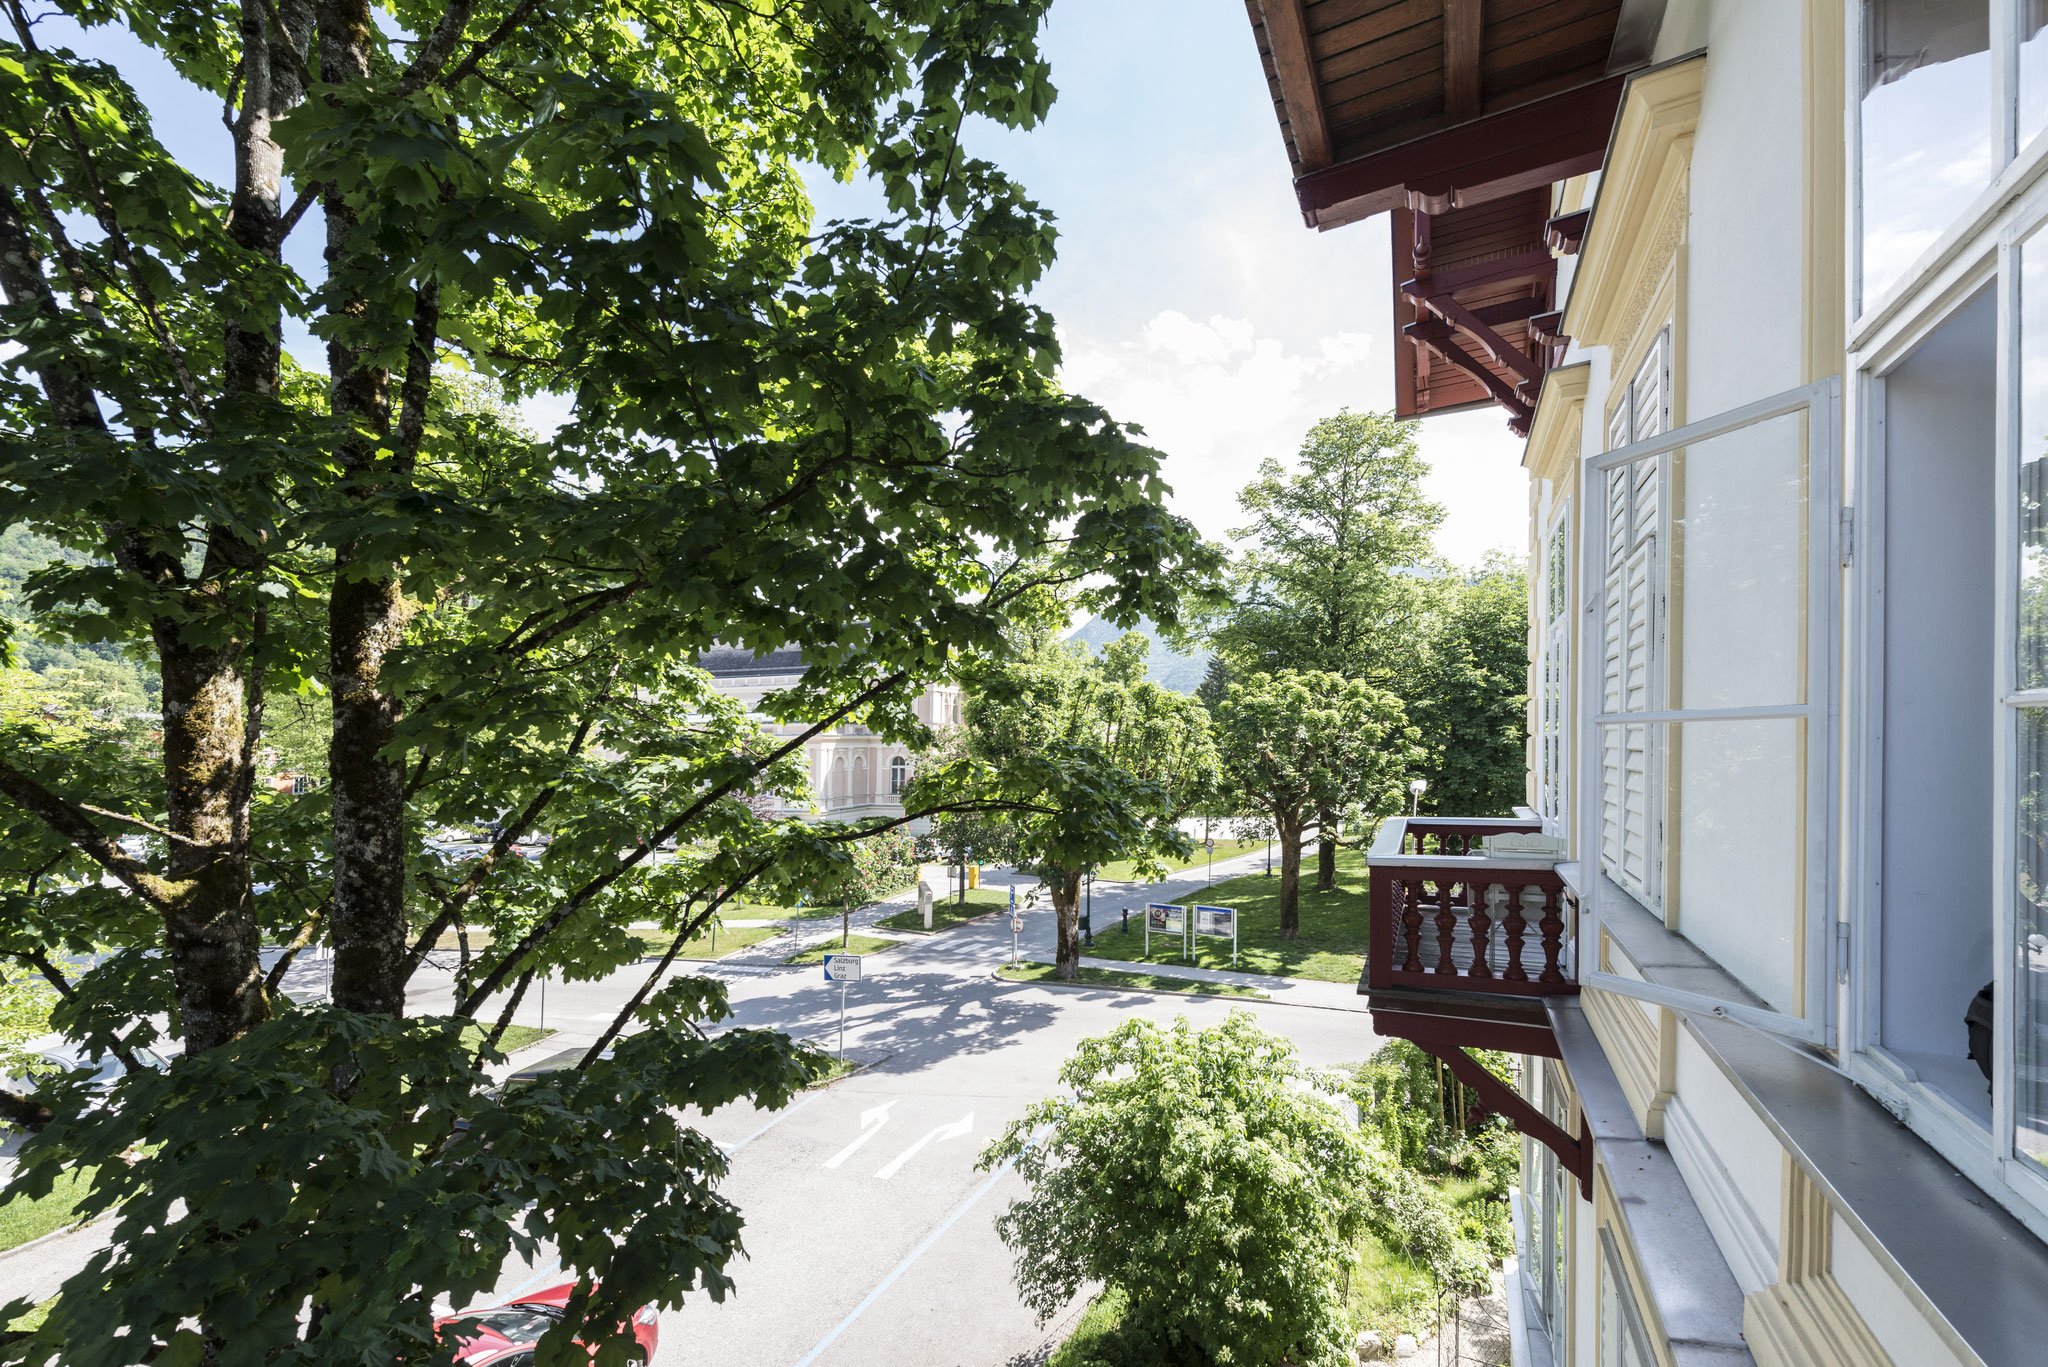 Villa Schodterer - Apartments in der Kaiserstadt Bad Ischl